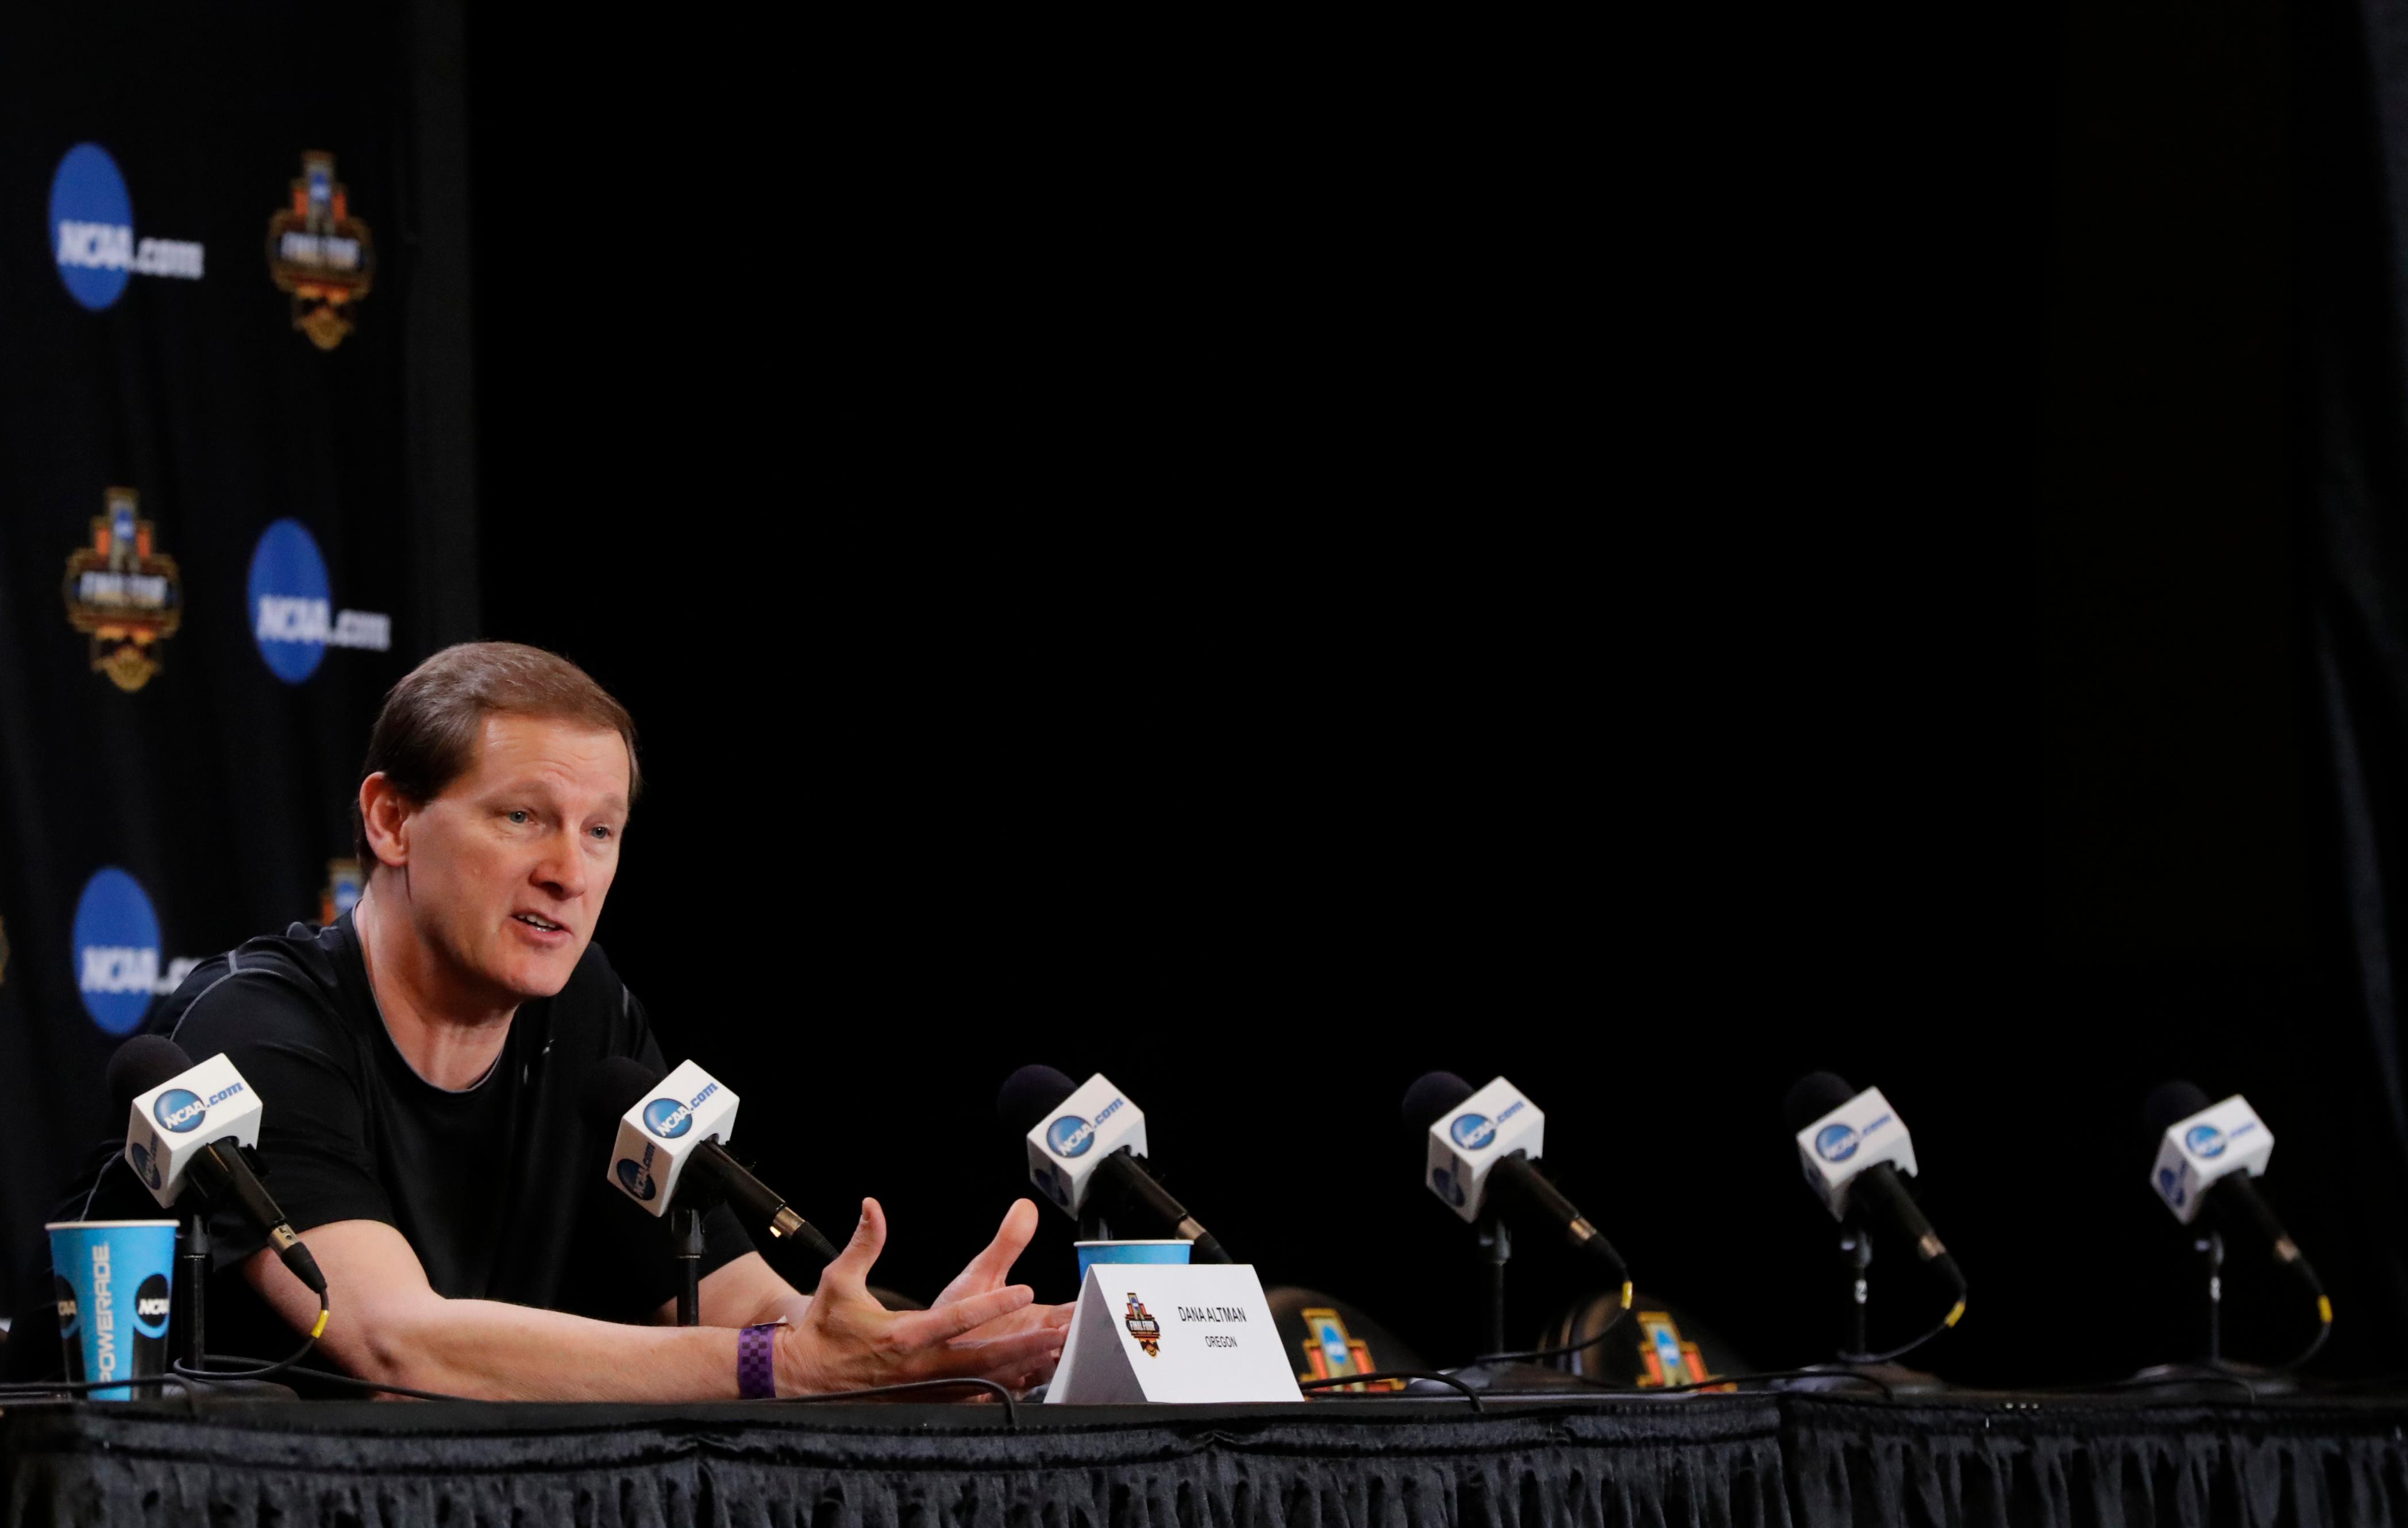 Oregon head coach Dana Altman answers questions after a practice session for their NCAA Final Four tournament college basketball semifinal game Thursday, March 30, 2017, in Glendale, Ariz. (AP Photo/Matt York)